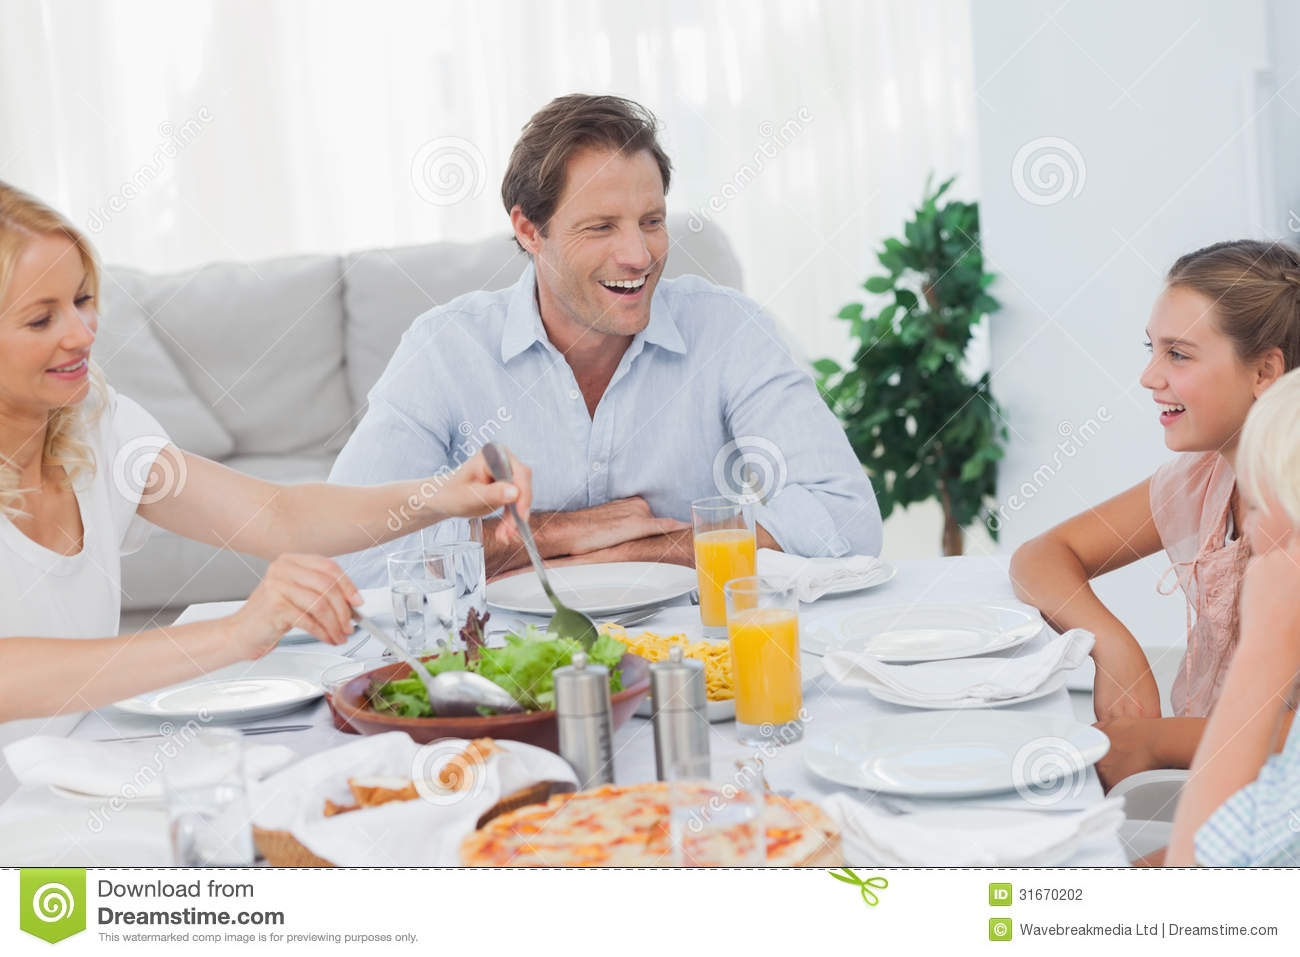 Family Around The Dinner Table Stock Photography Image  : family around dinner table smiling 31670202 from www.dreamstime.com size 1300 x 957 jpeg 111kB